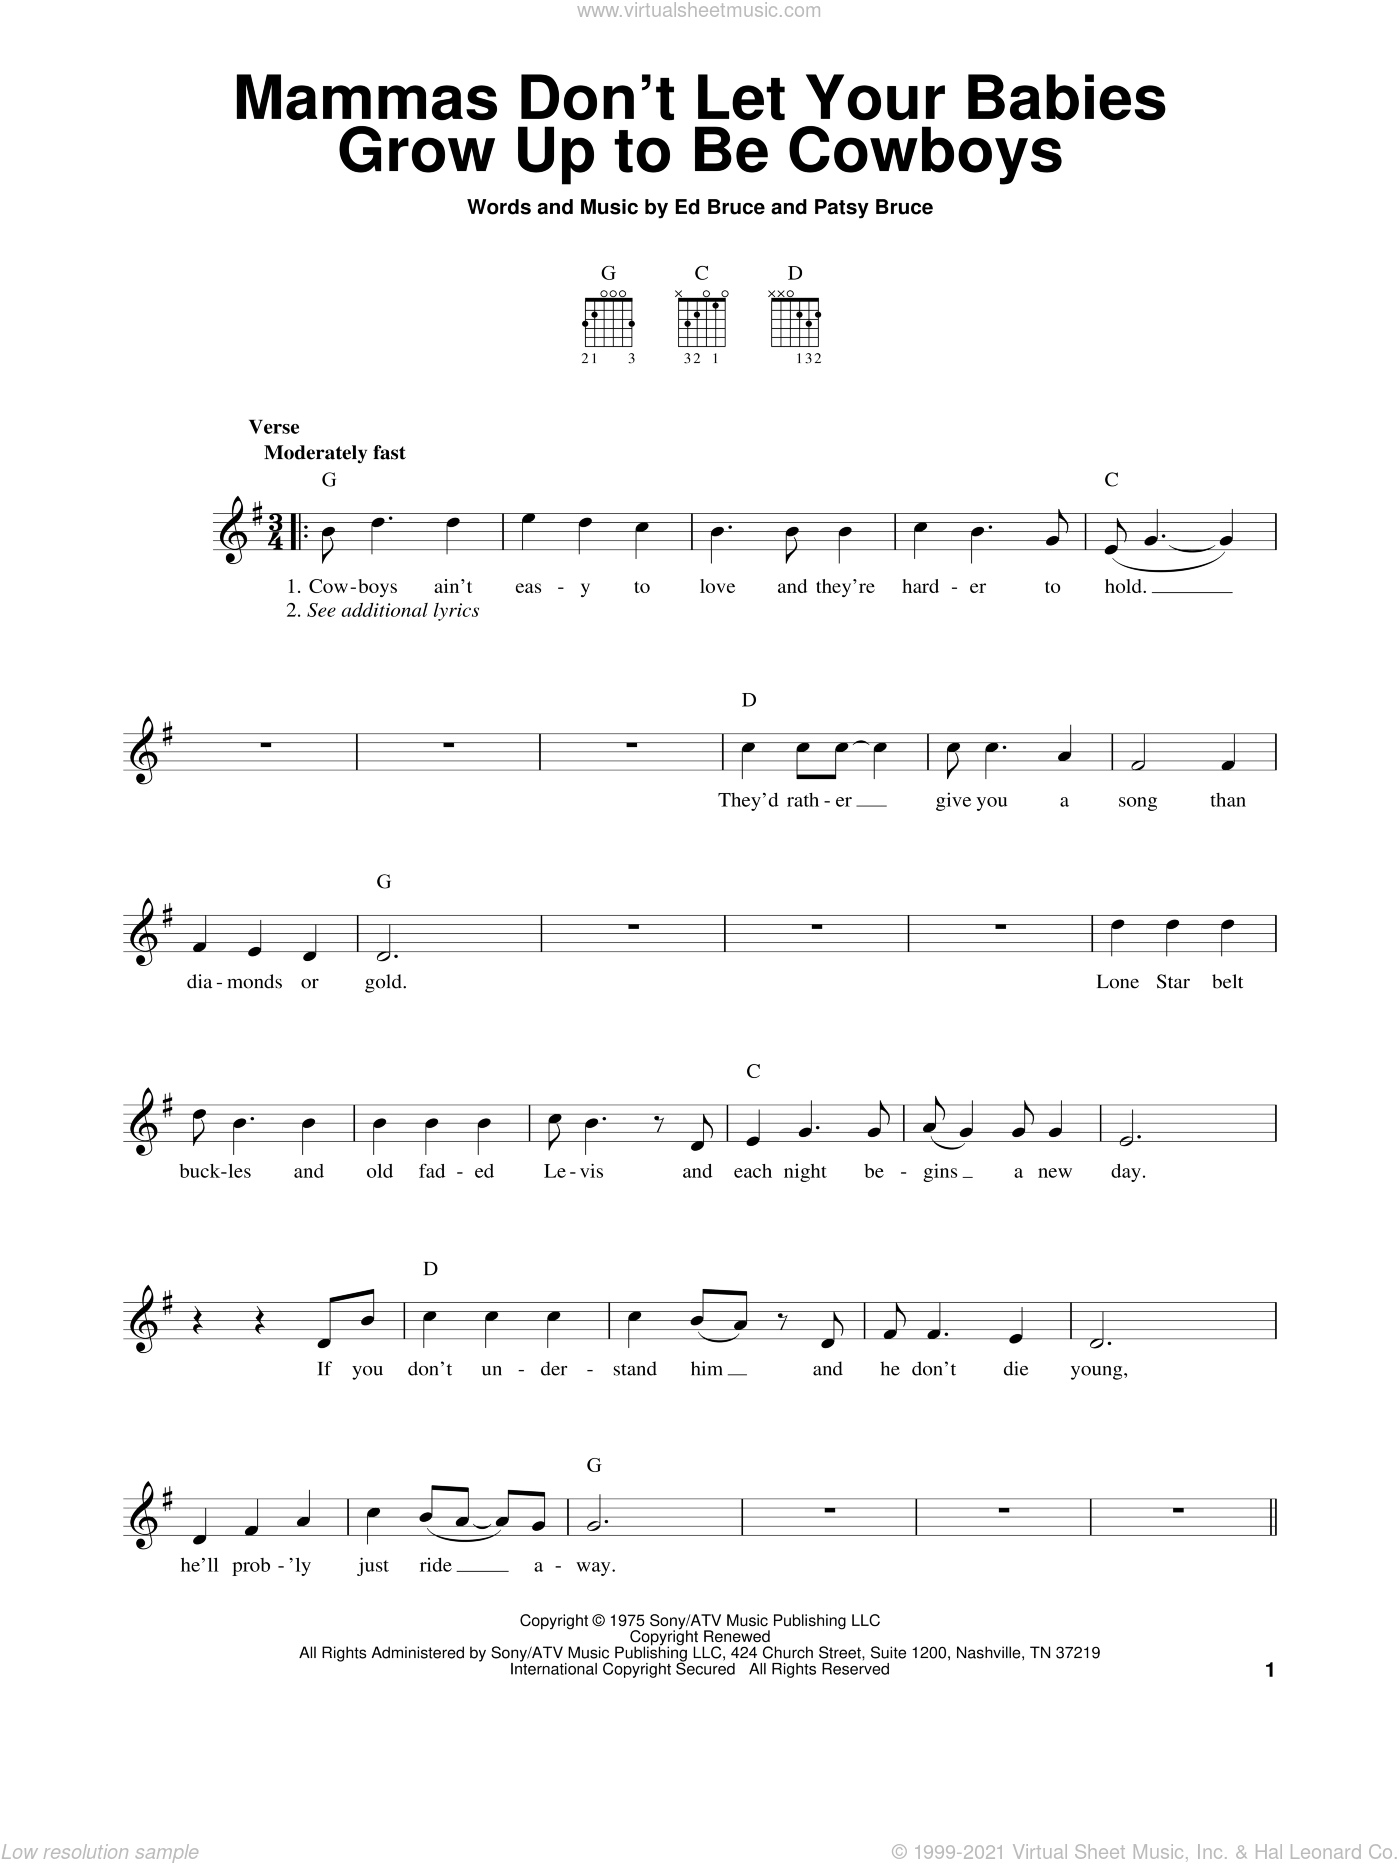 Mammas Don't Let Your Babies Grow Up To Be Cowboys sheet music for guitar solo (chords) by Patsy Bruce